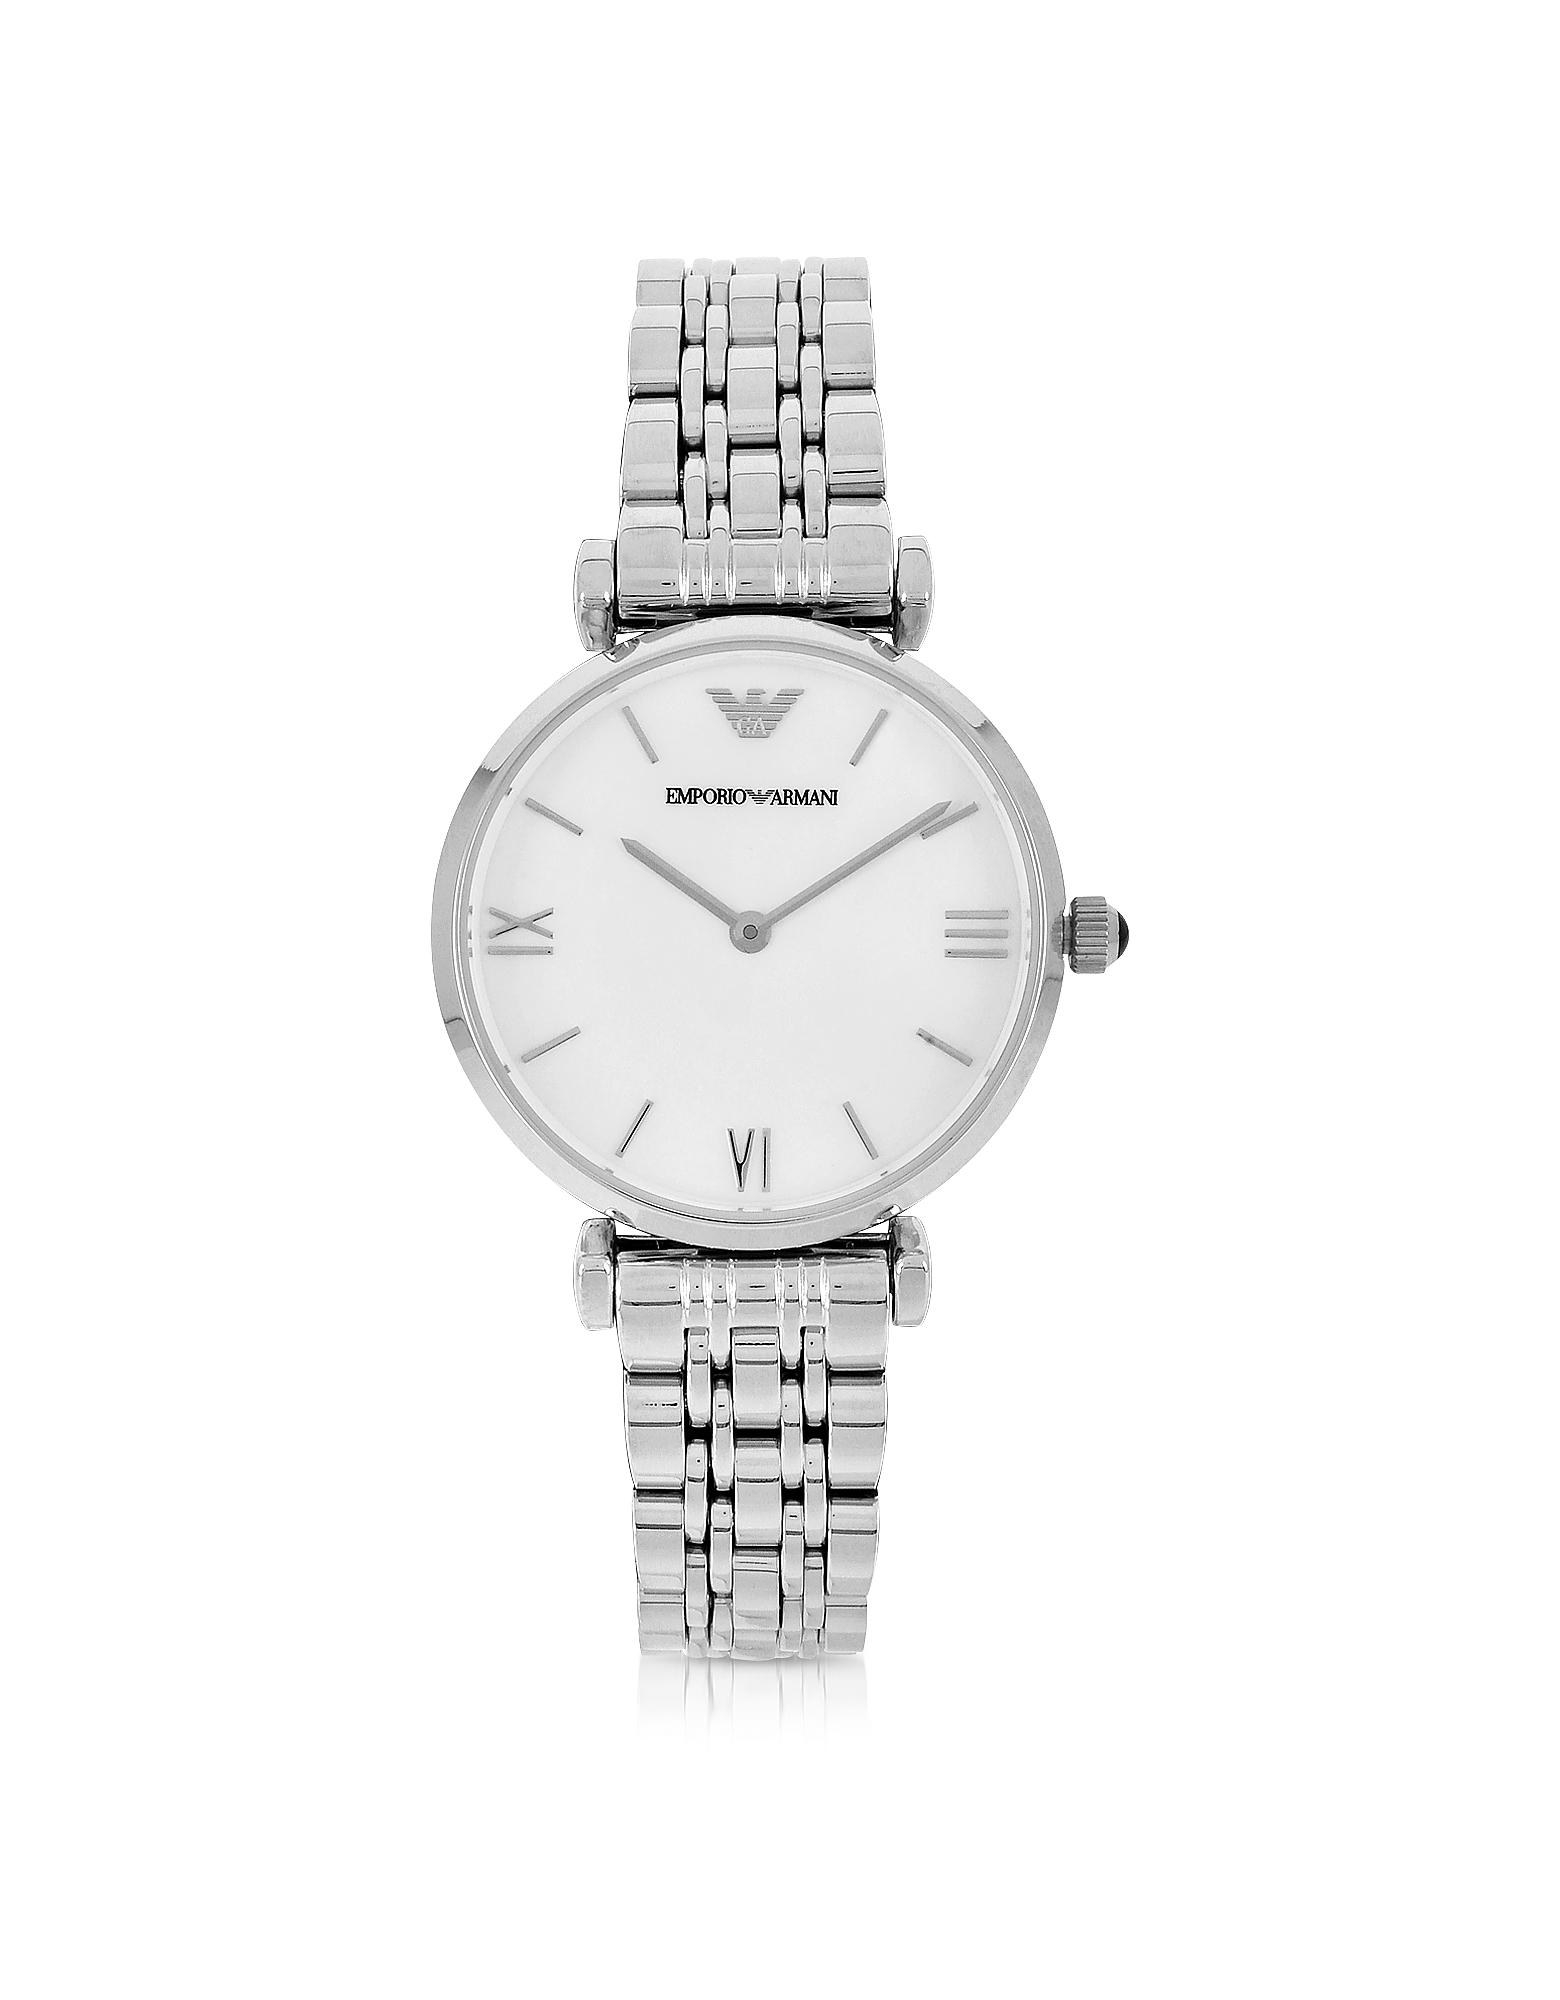 Emporio Armani Women's Watches, Stainless Steel Women's Watch